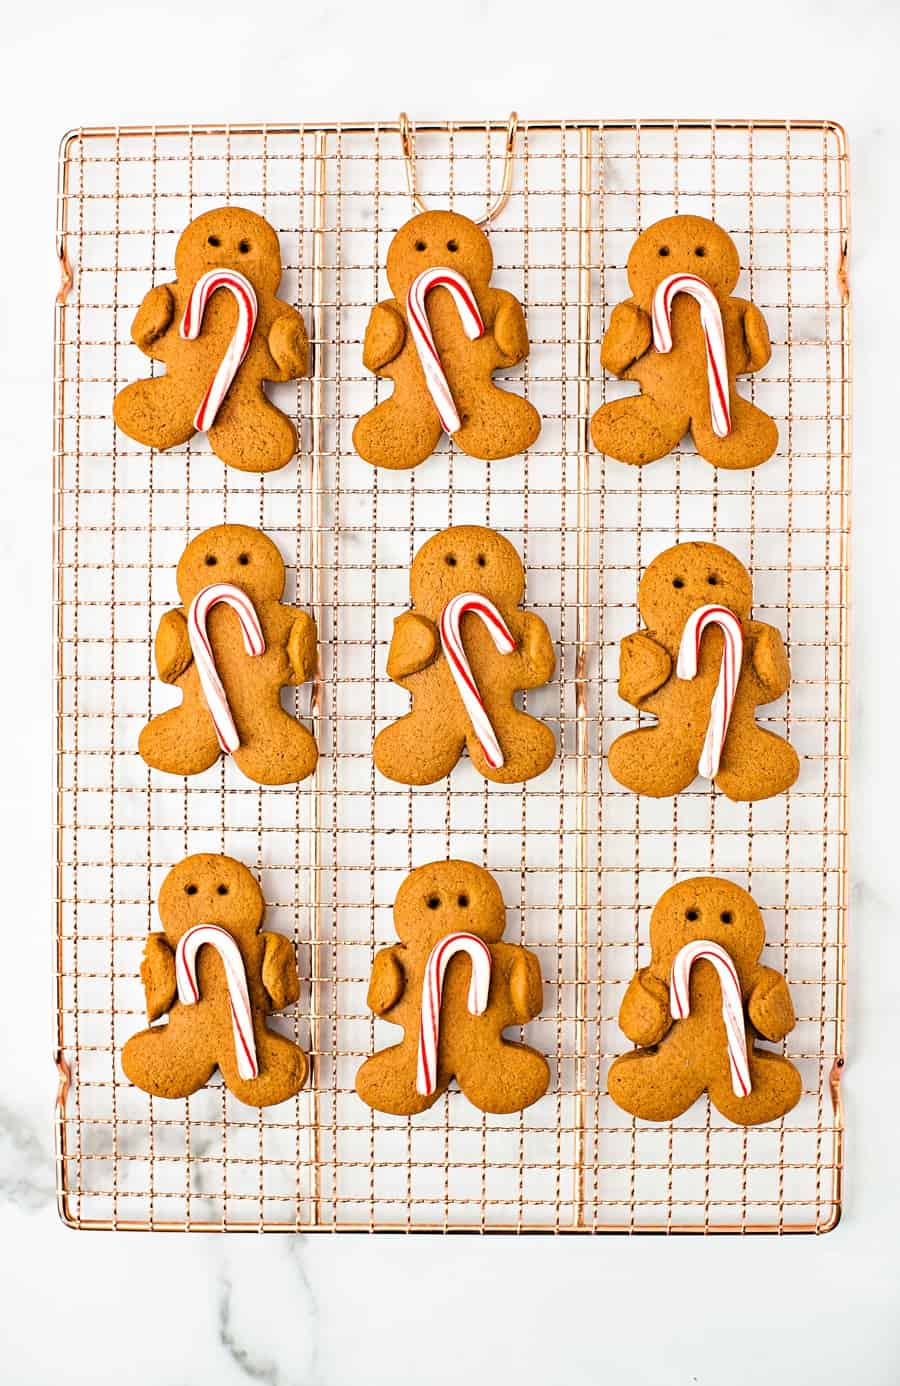 Gingerbread Holding Candy Canes Cookies